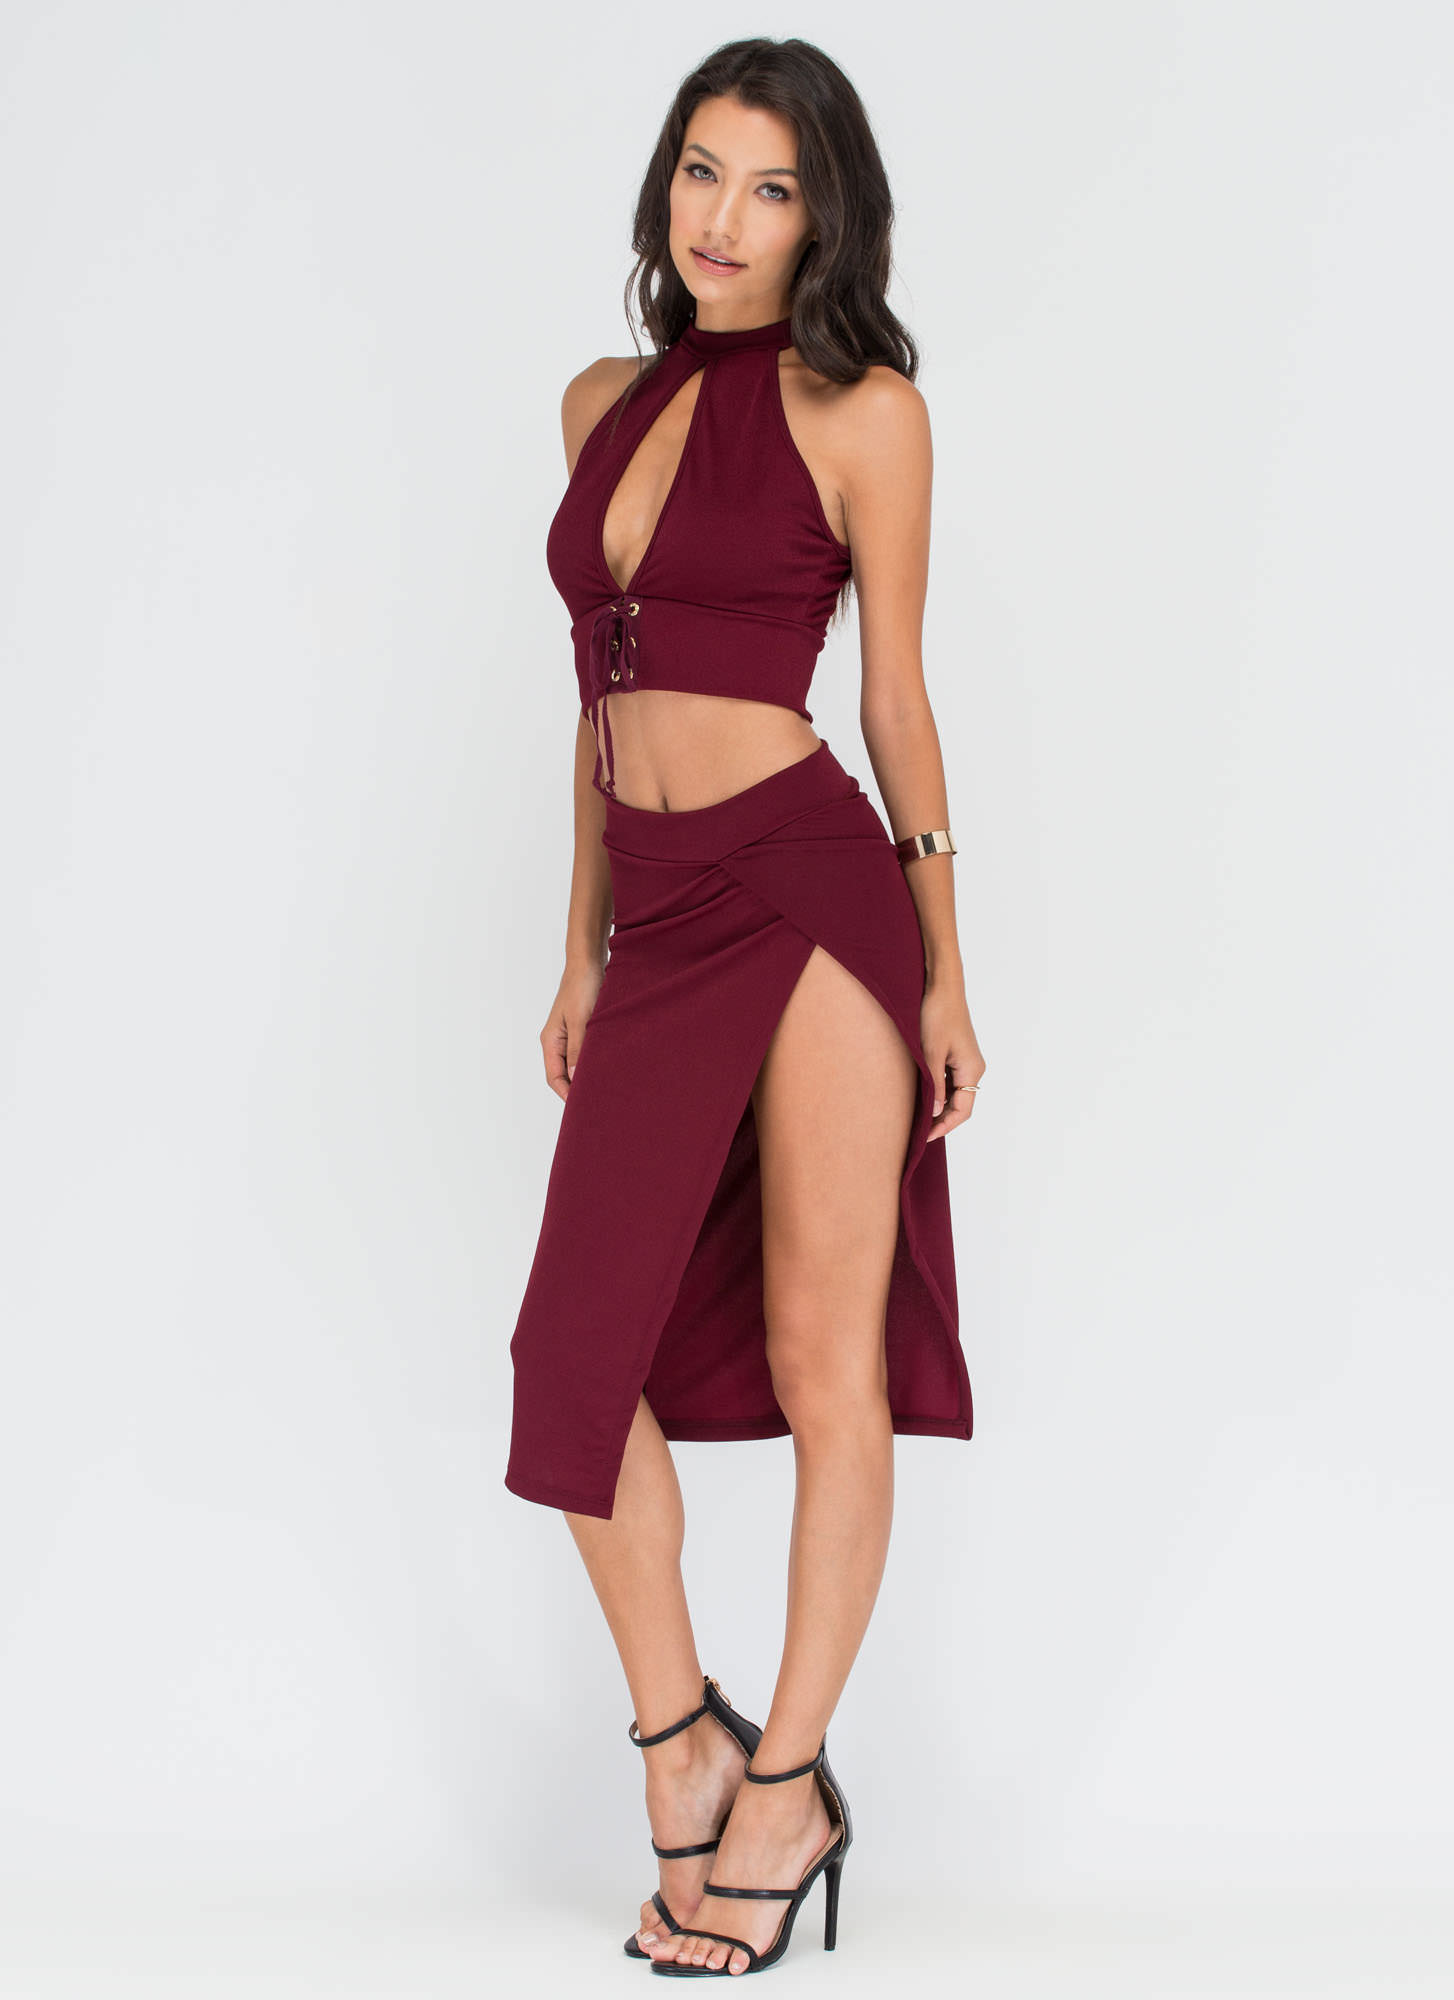 Split Second Lace-Up Top 'N Skirt Set WINE